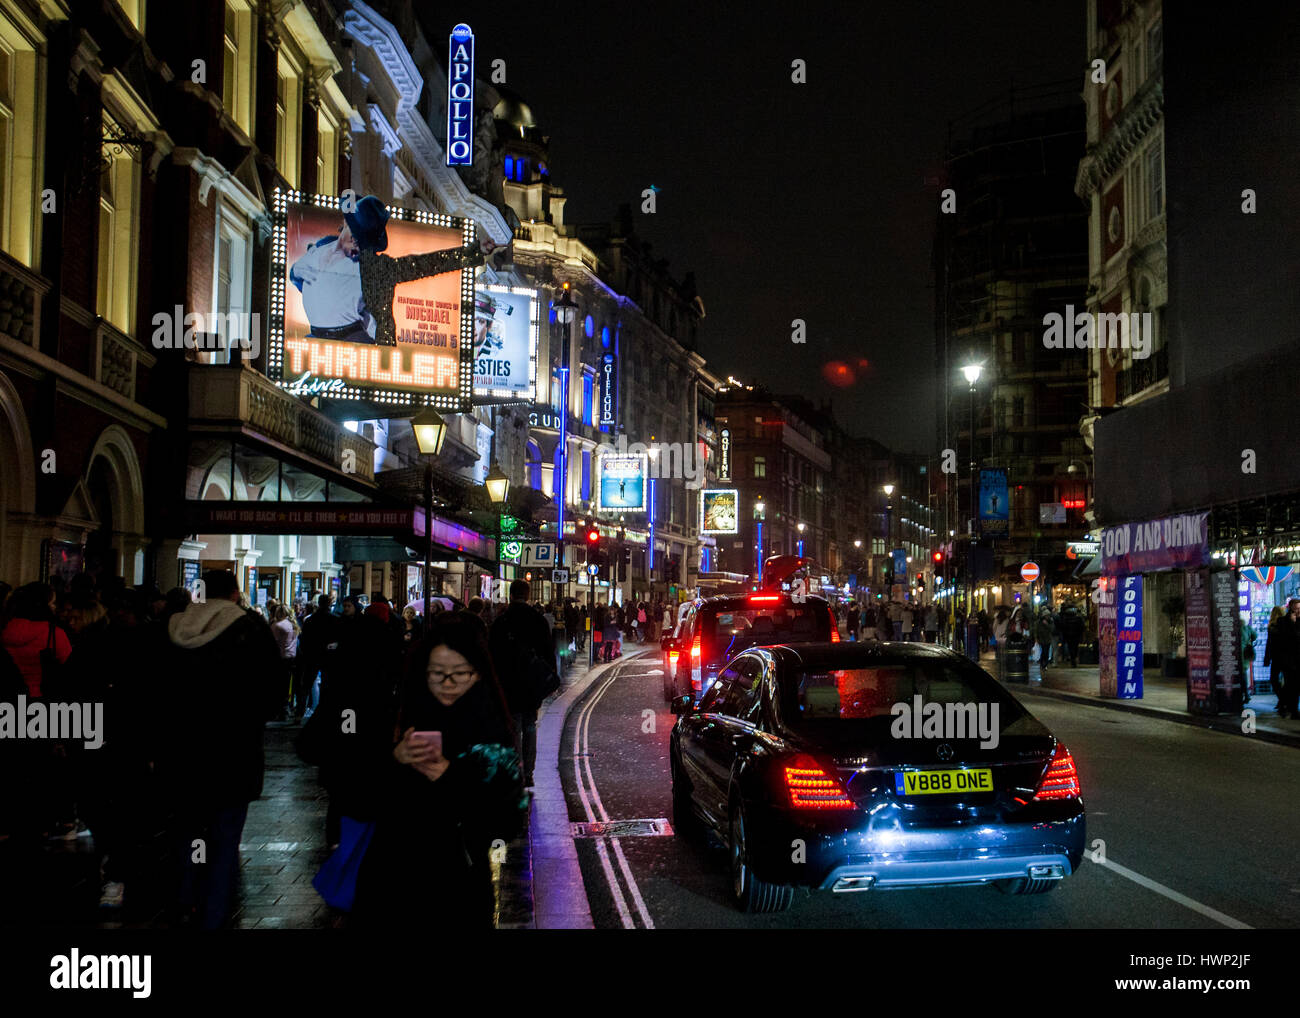 shaftesbury avenue theatre land west end London nighttime neon lights reflected in wet street - Stock Image